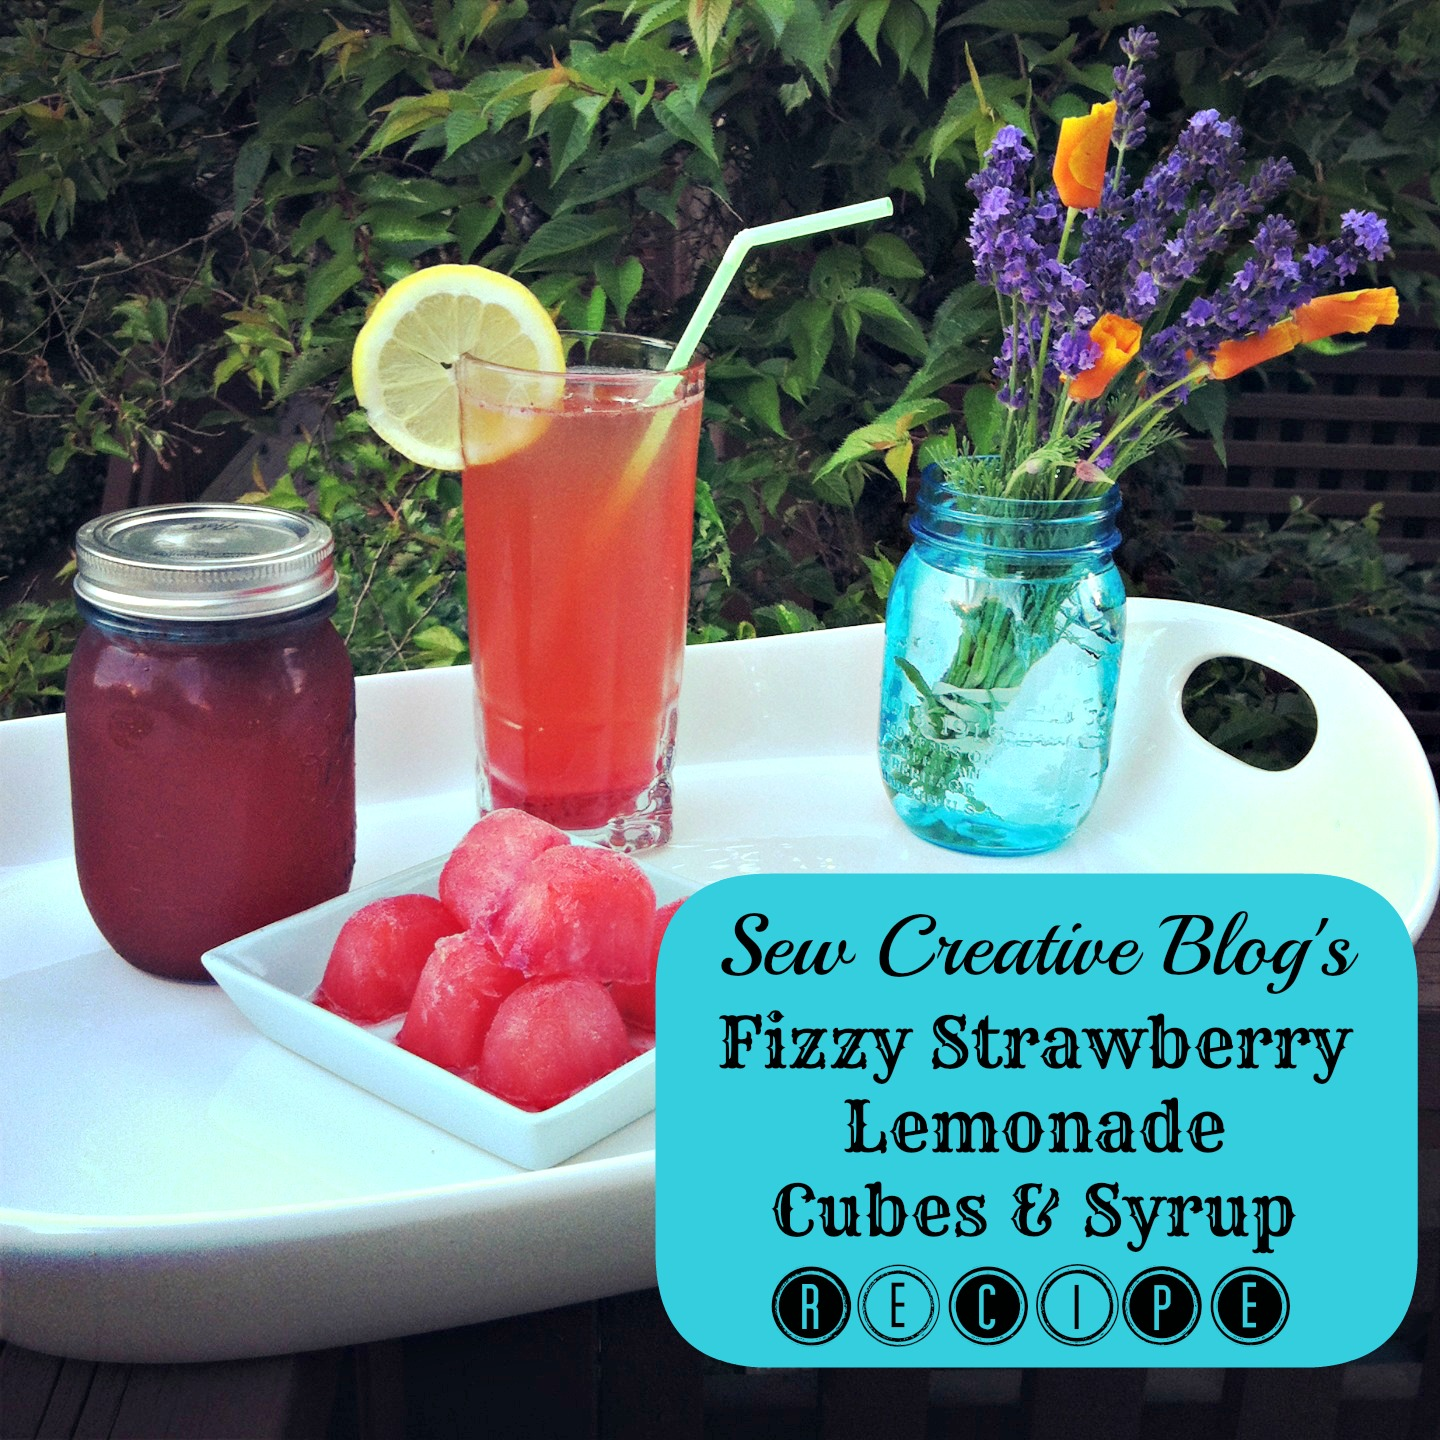 Sew Creative Blog's Fizzy Strawberry Lemonade Cubes and Syrup Recipe